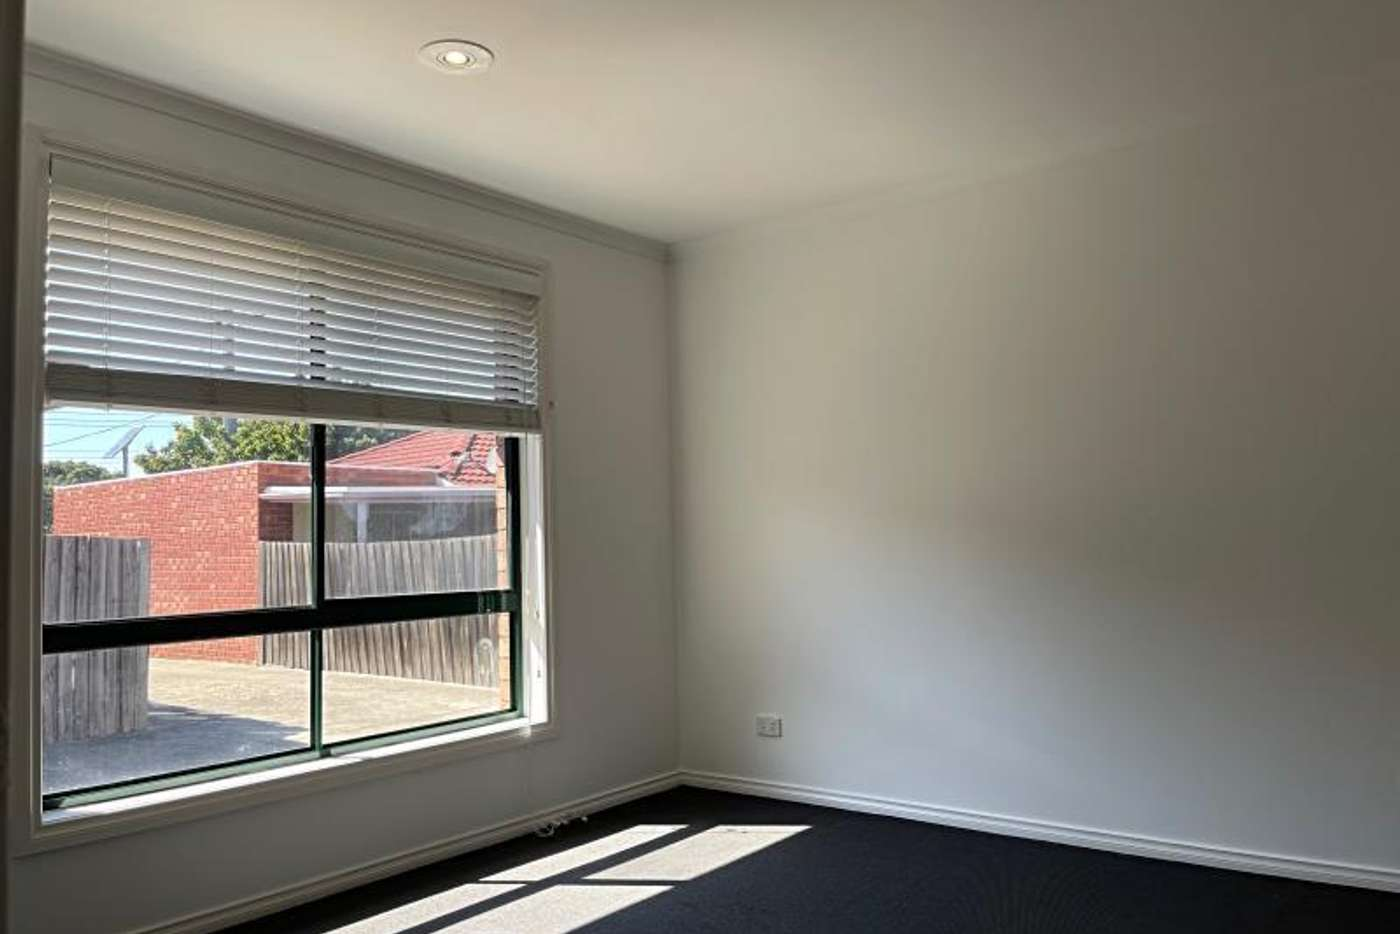 Seventh view of Homely house listing, 379 Dalton Road, Epping VIC 3076